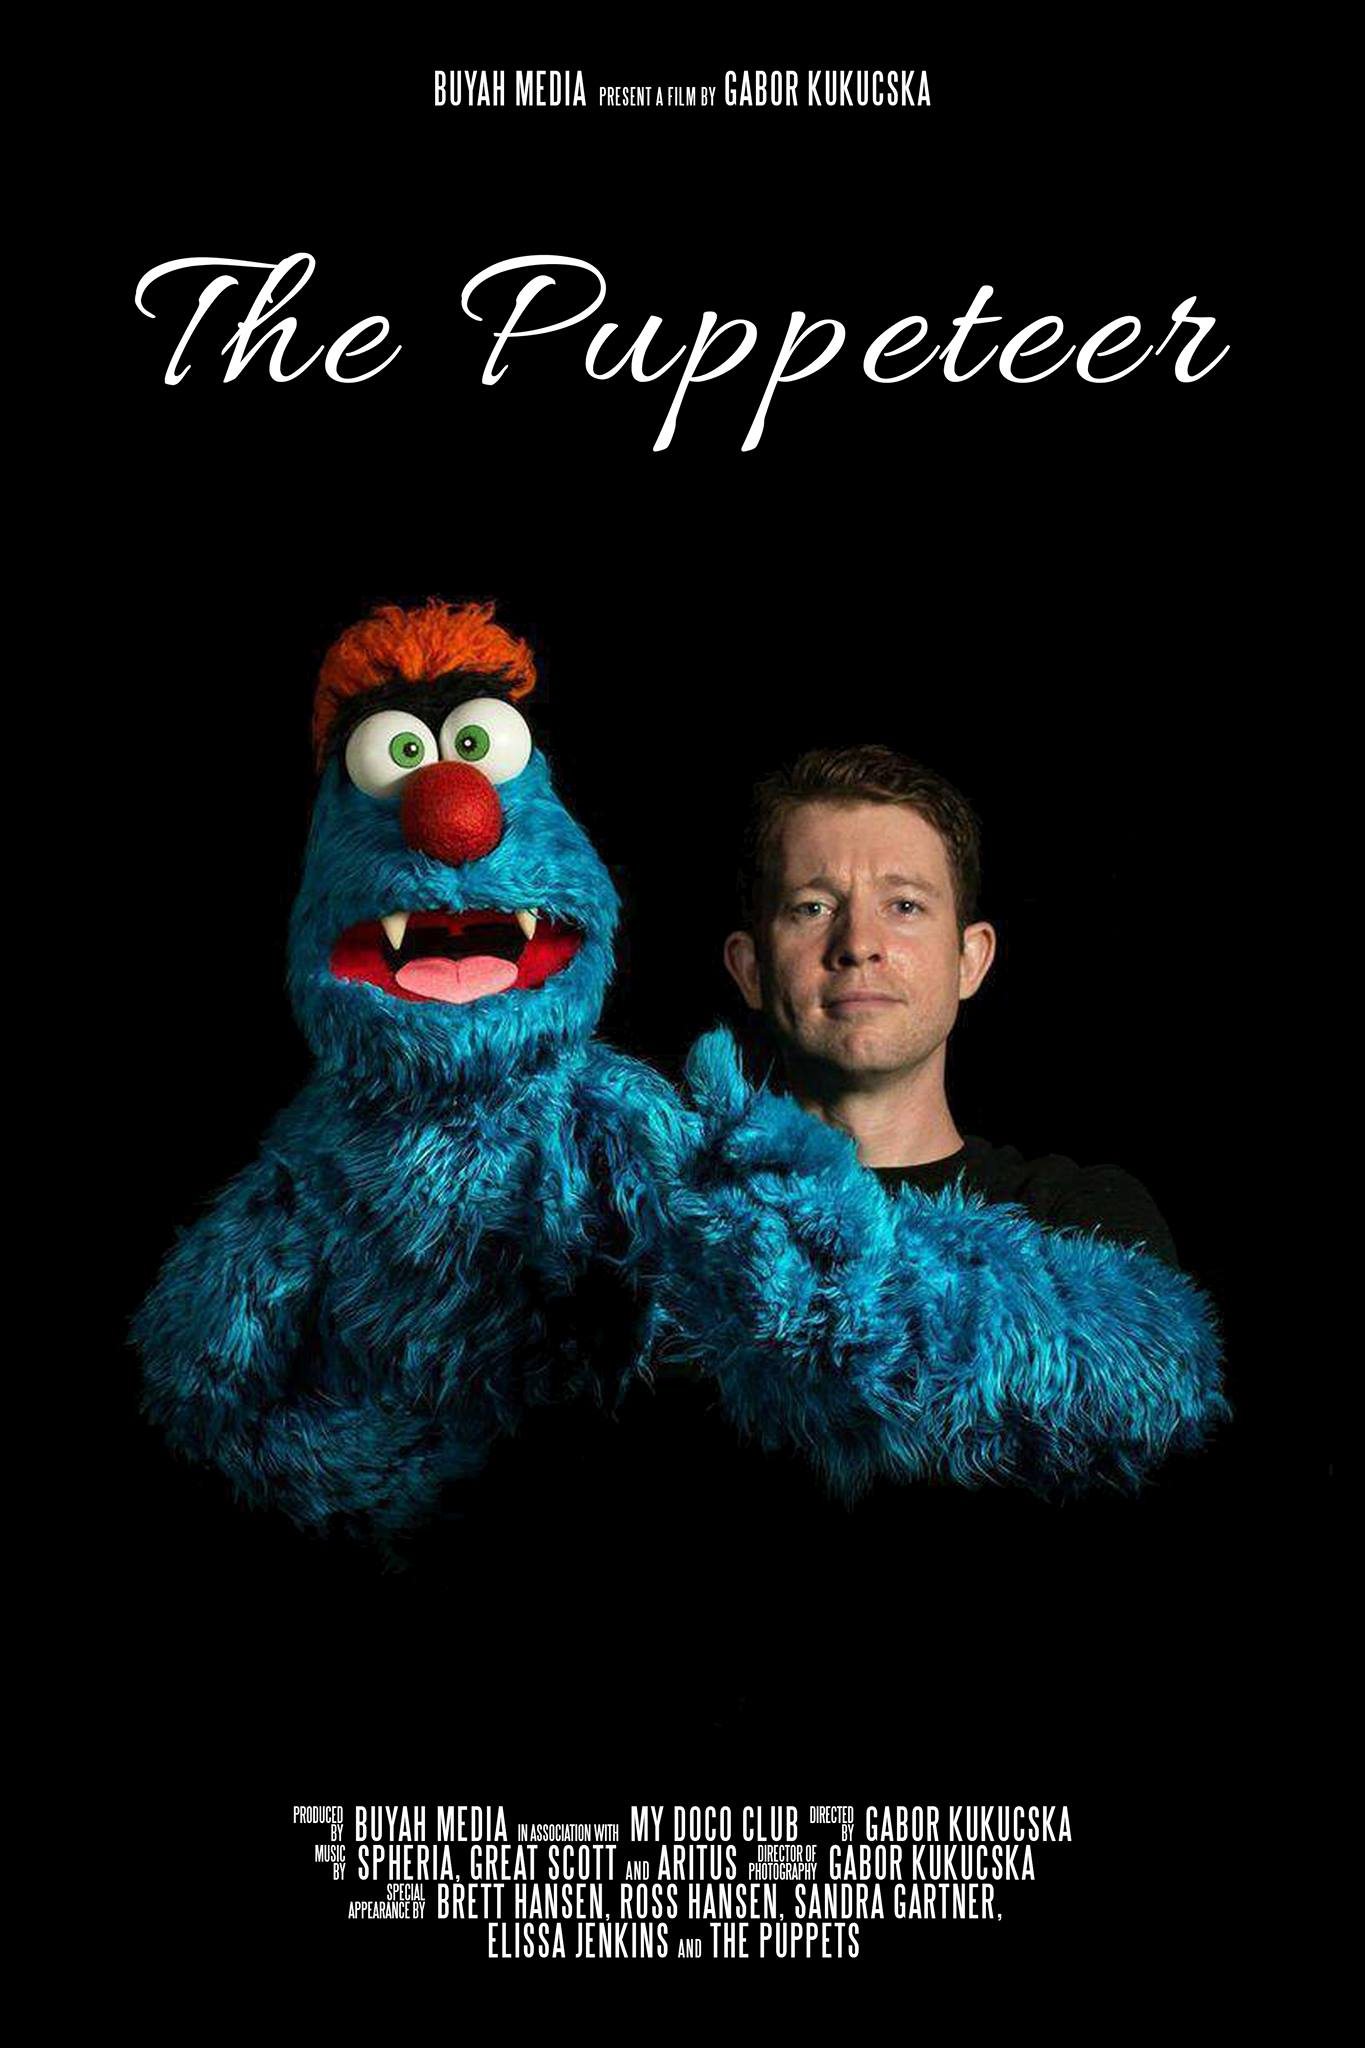 The Puppeteer poster